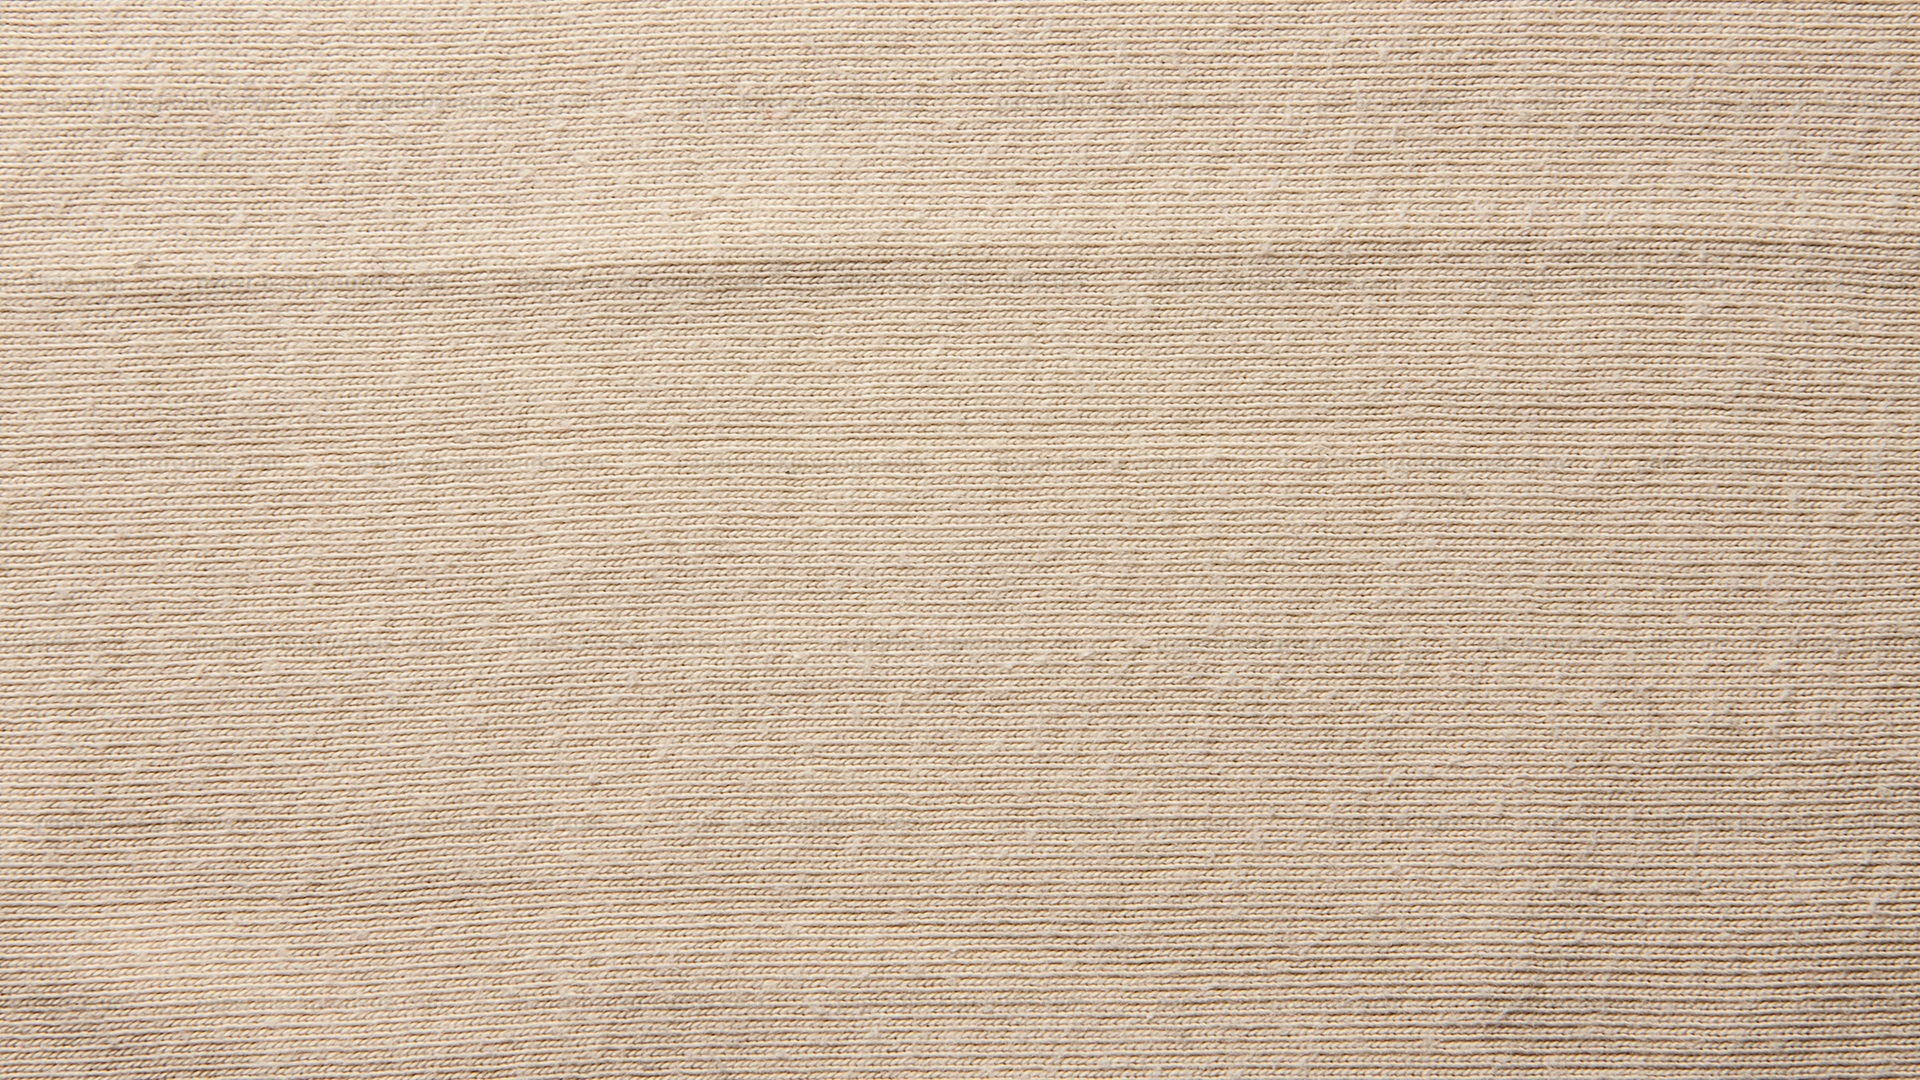 Light Brown Fabric Texture Background Hd Paper Backgrounds